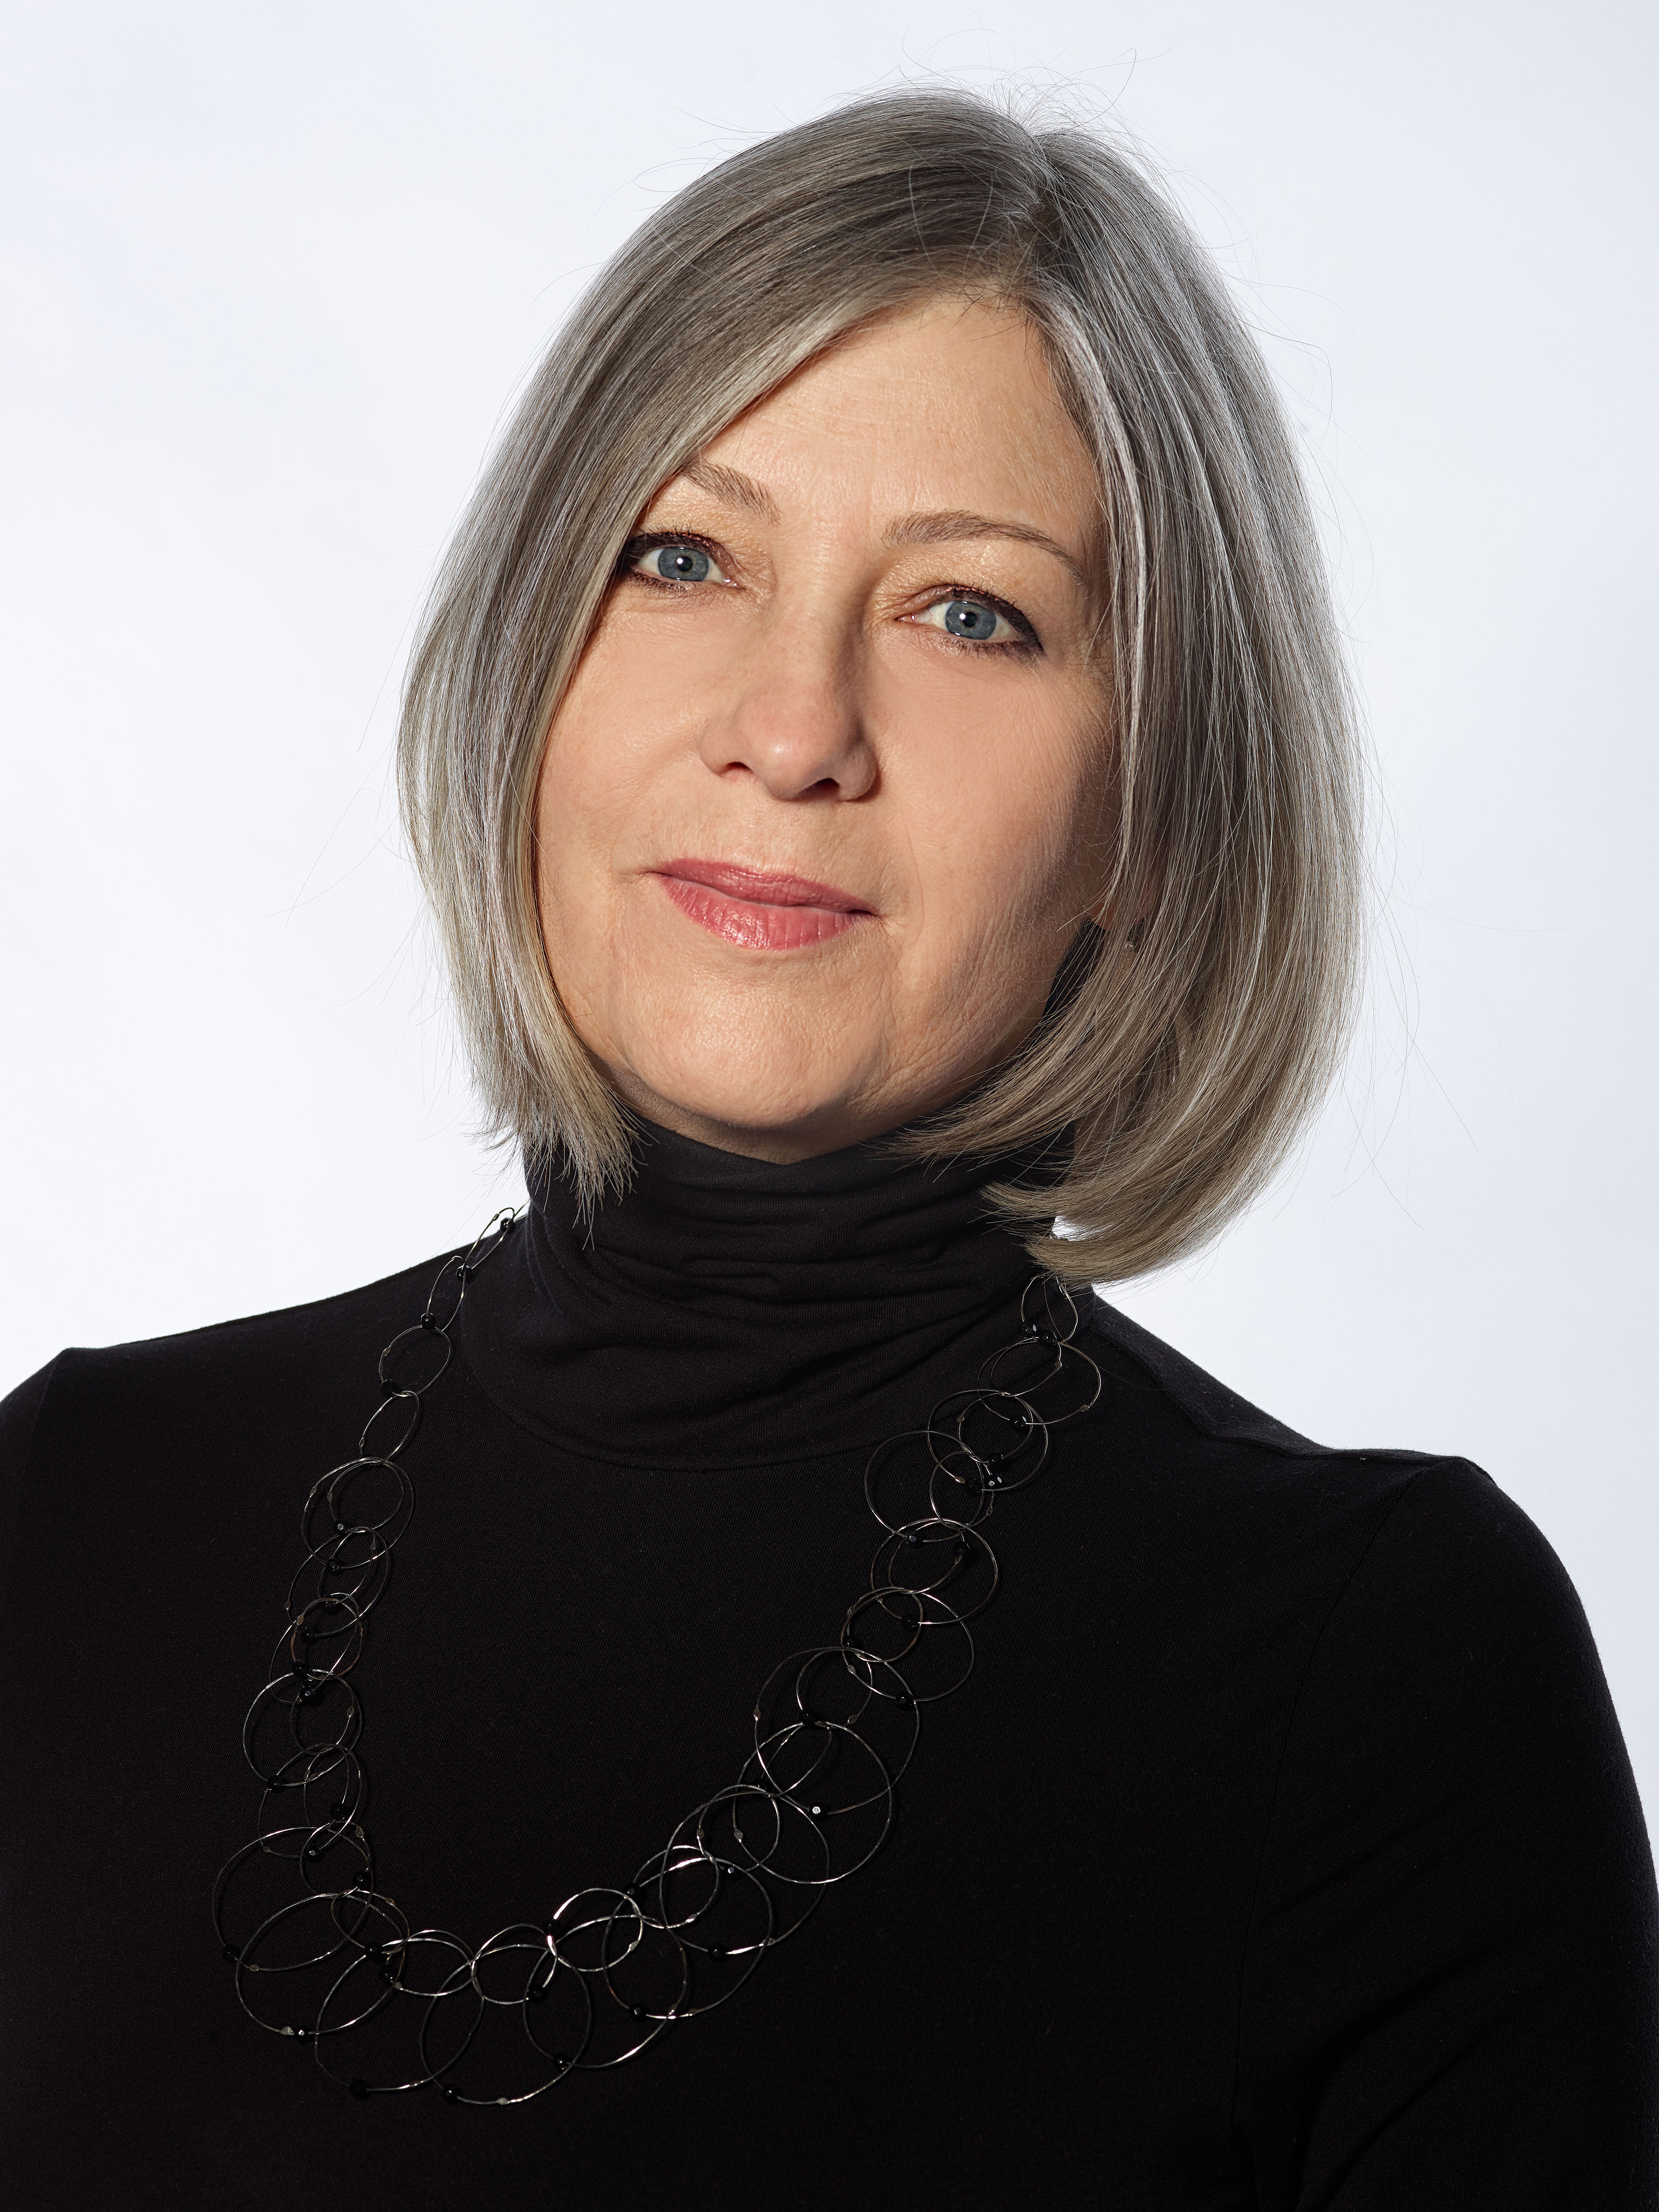 Headshot of woman with silver hair wearing black turtleneck